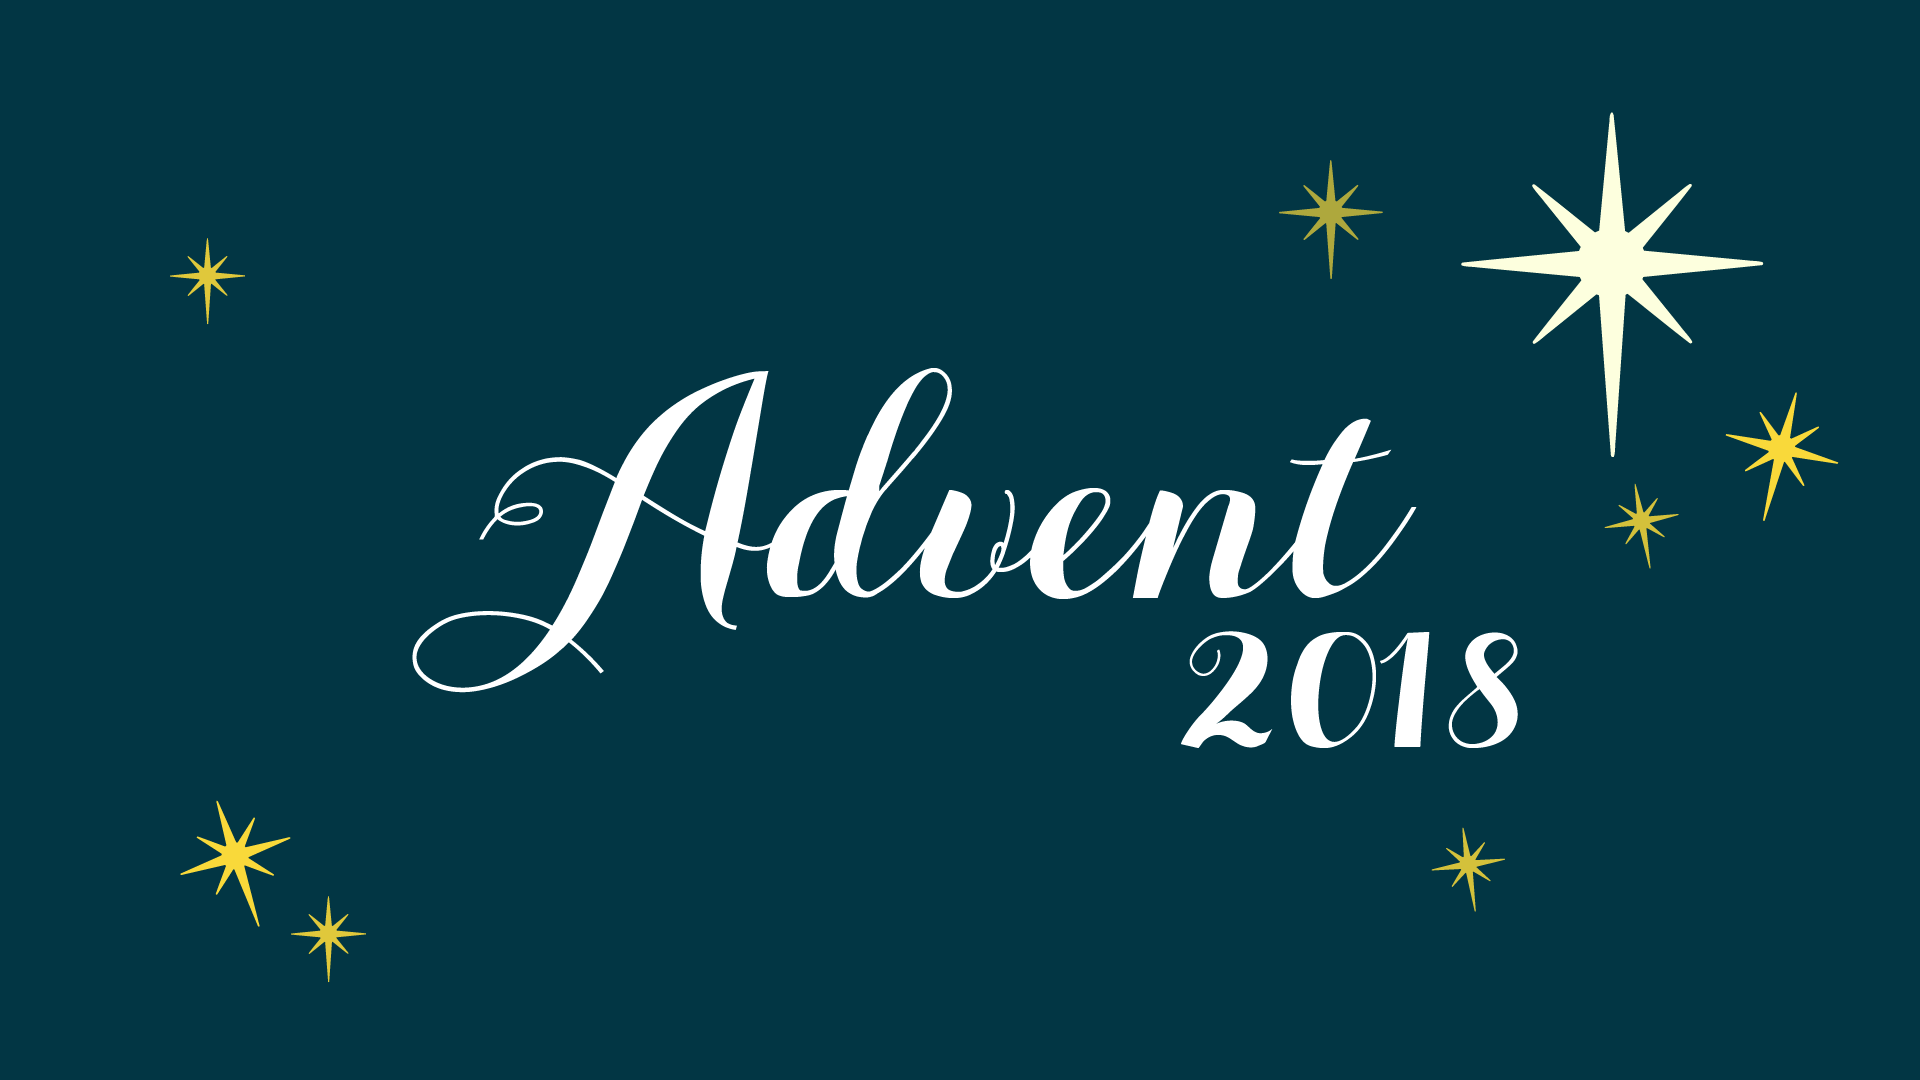 advent2018-01.png